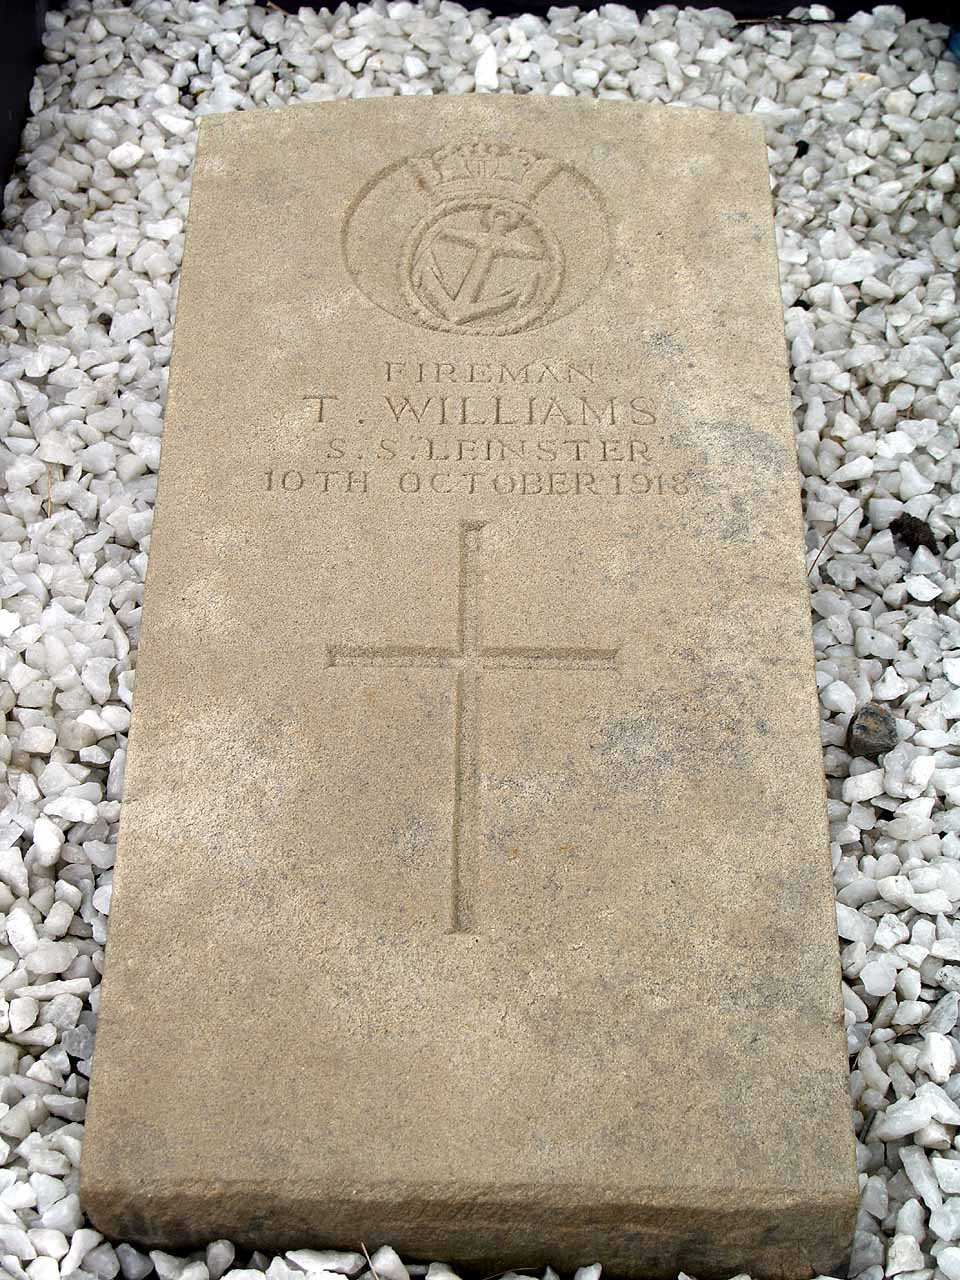 Thomas Williams - Fireman lost on the SS Leinster in 1918 - aged 65